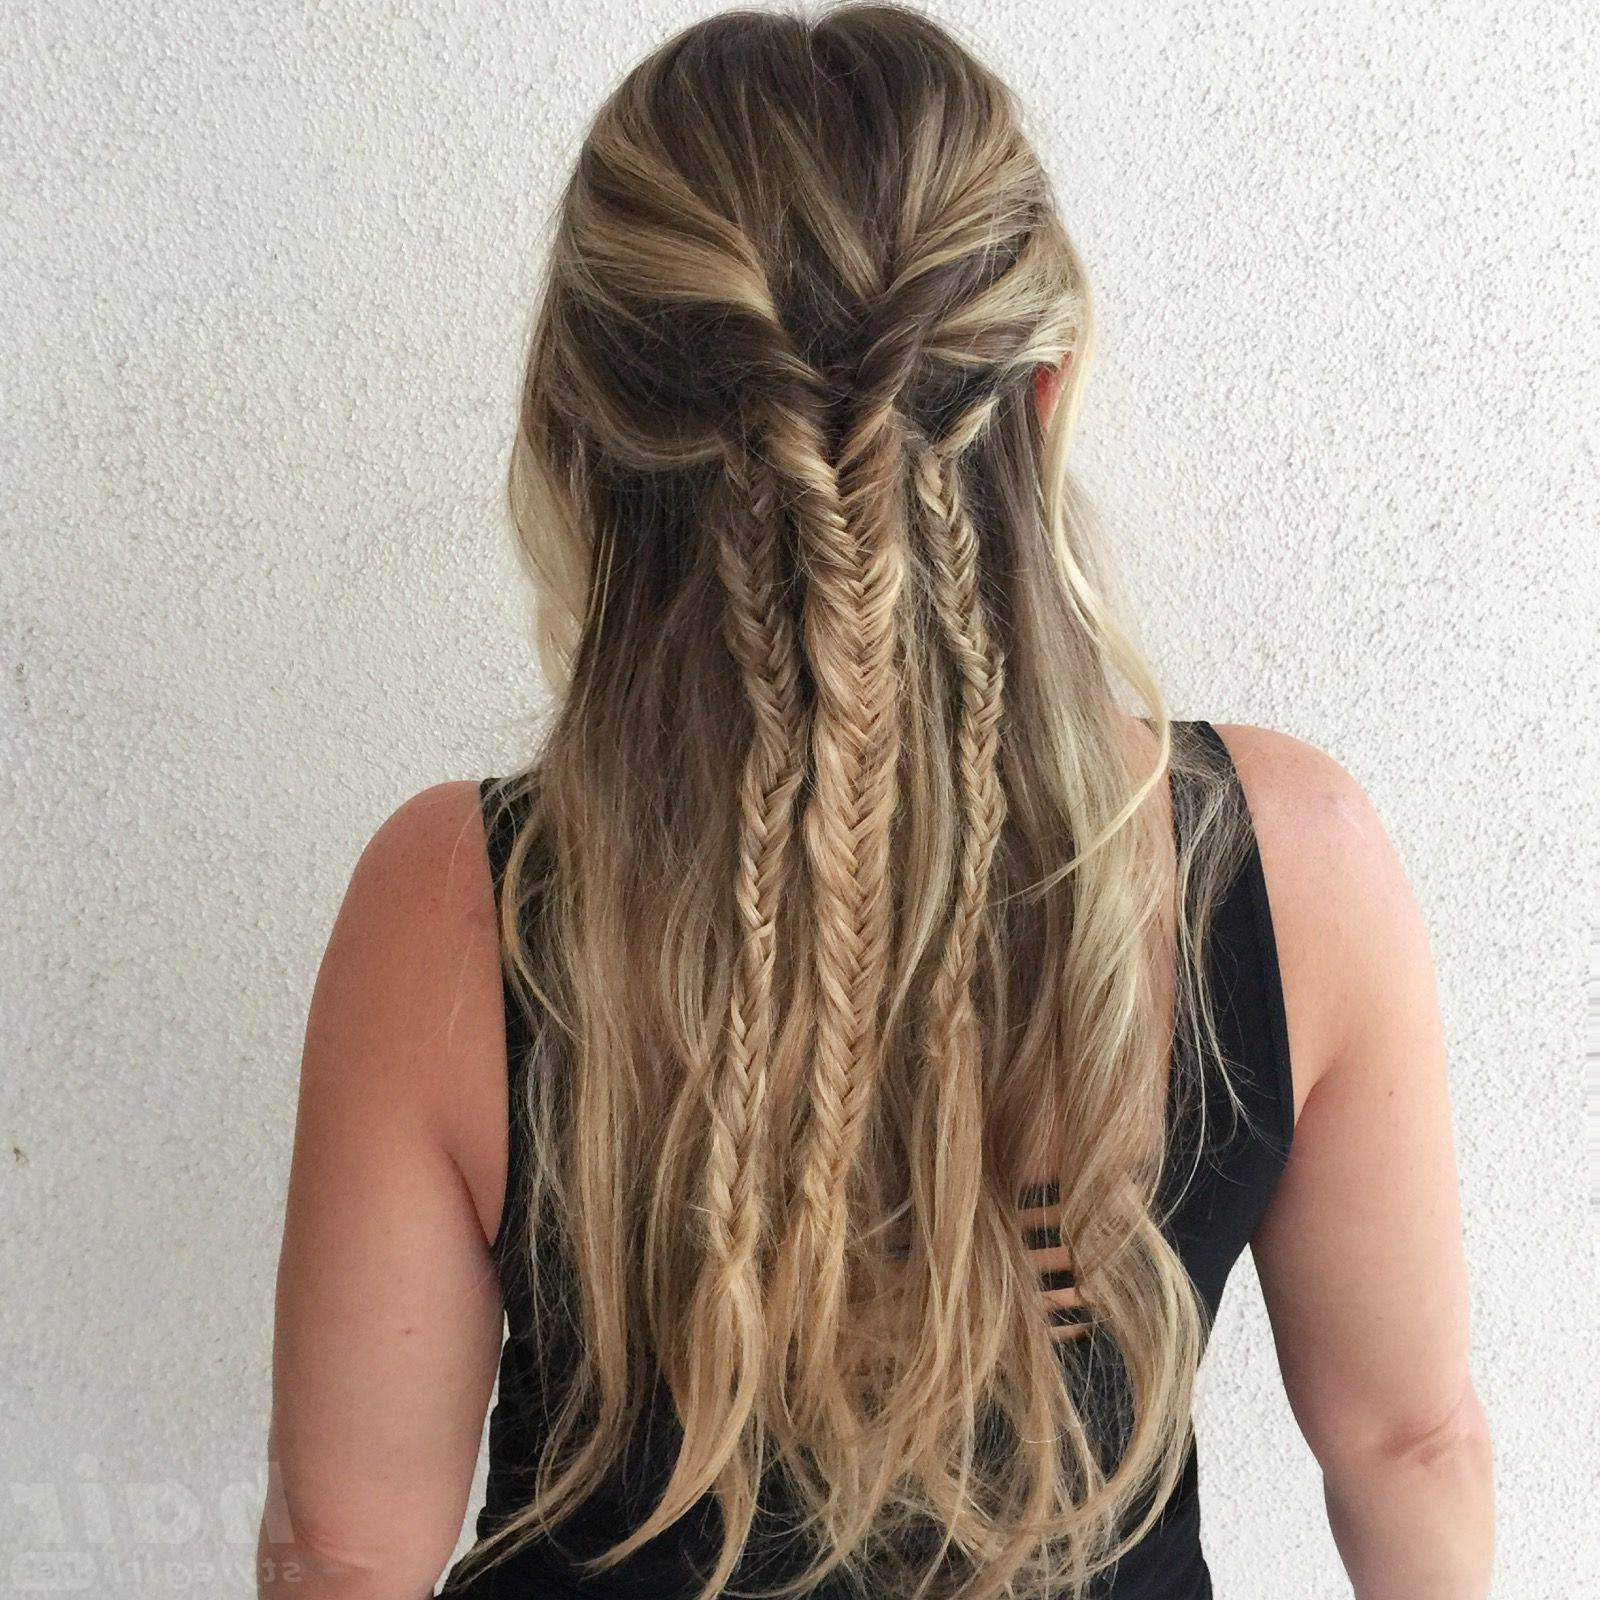 Different Styles To Make Braid Hairstyles For Women (View 7 of 20)